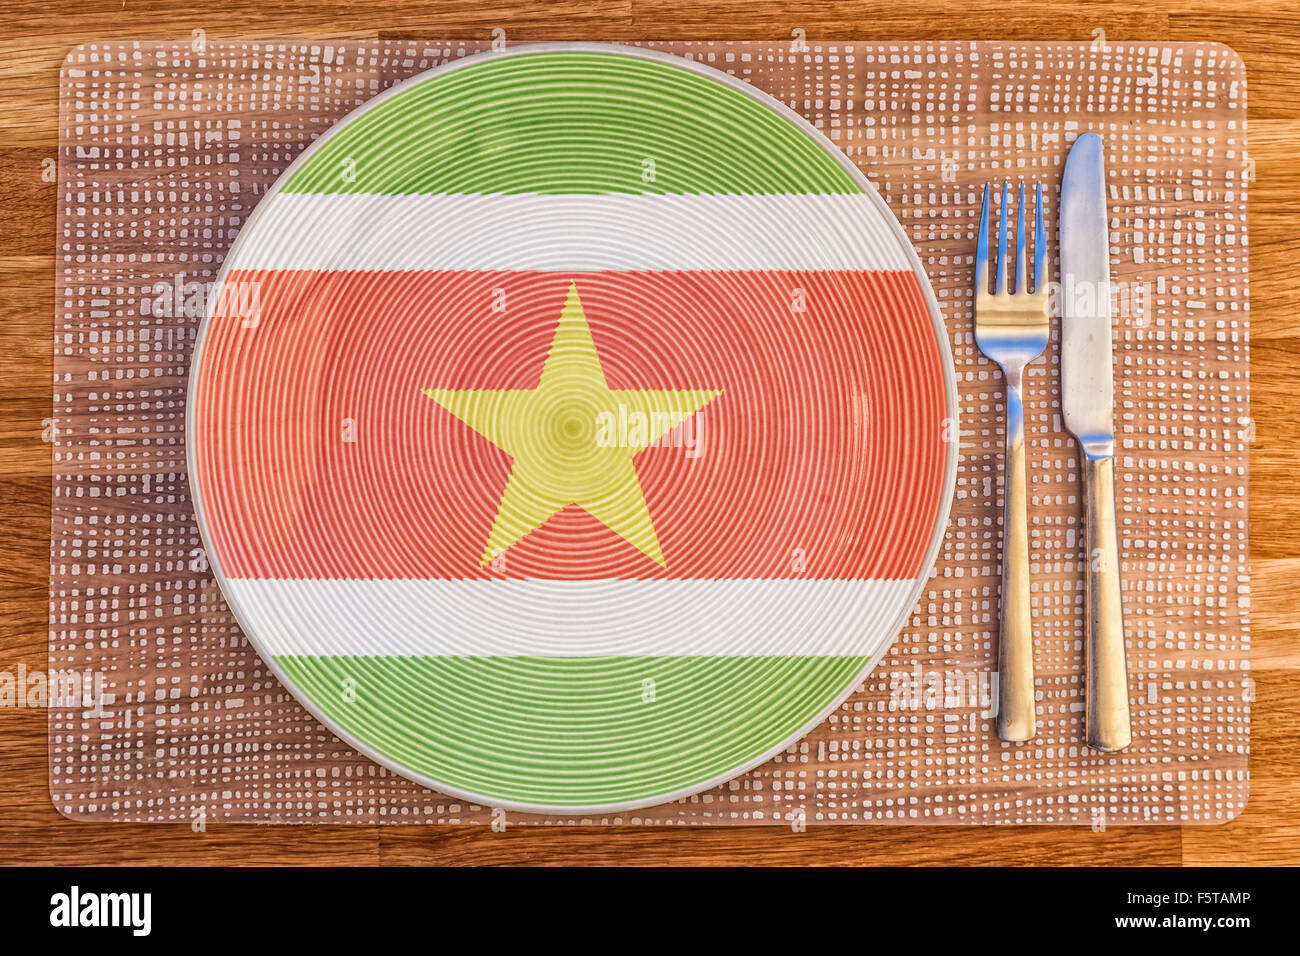 Dinner plate with the flag of Suriname on it for your international food and drink concepts. - Stock Image